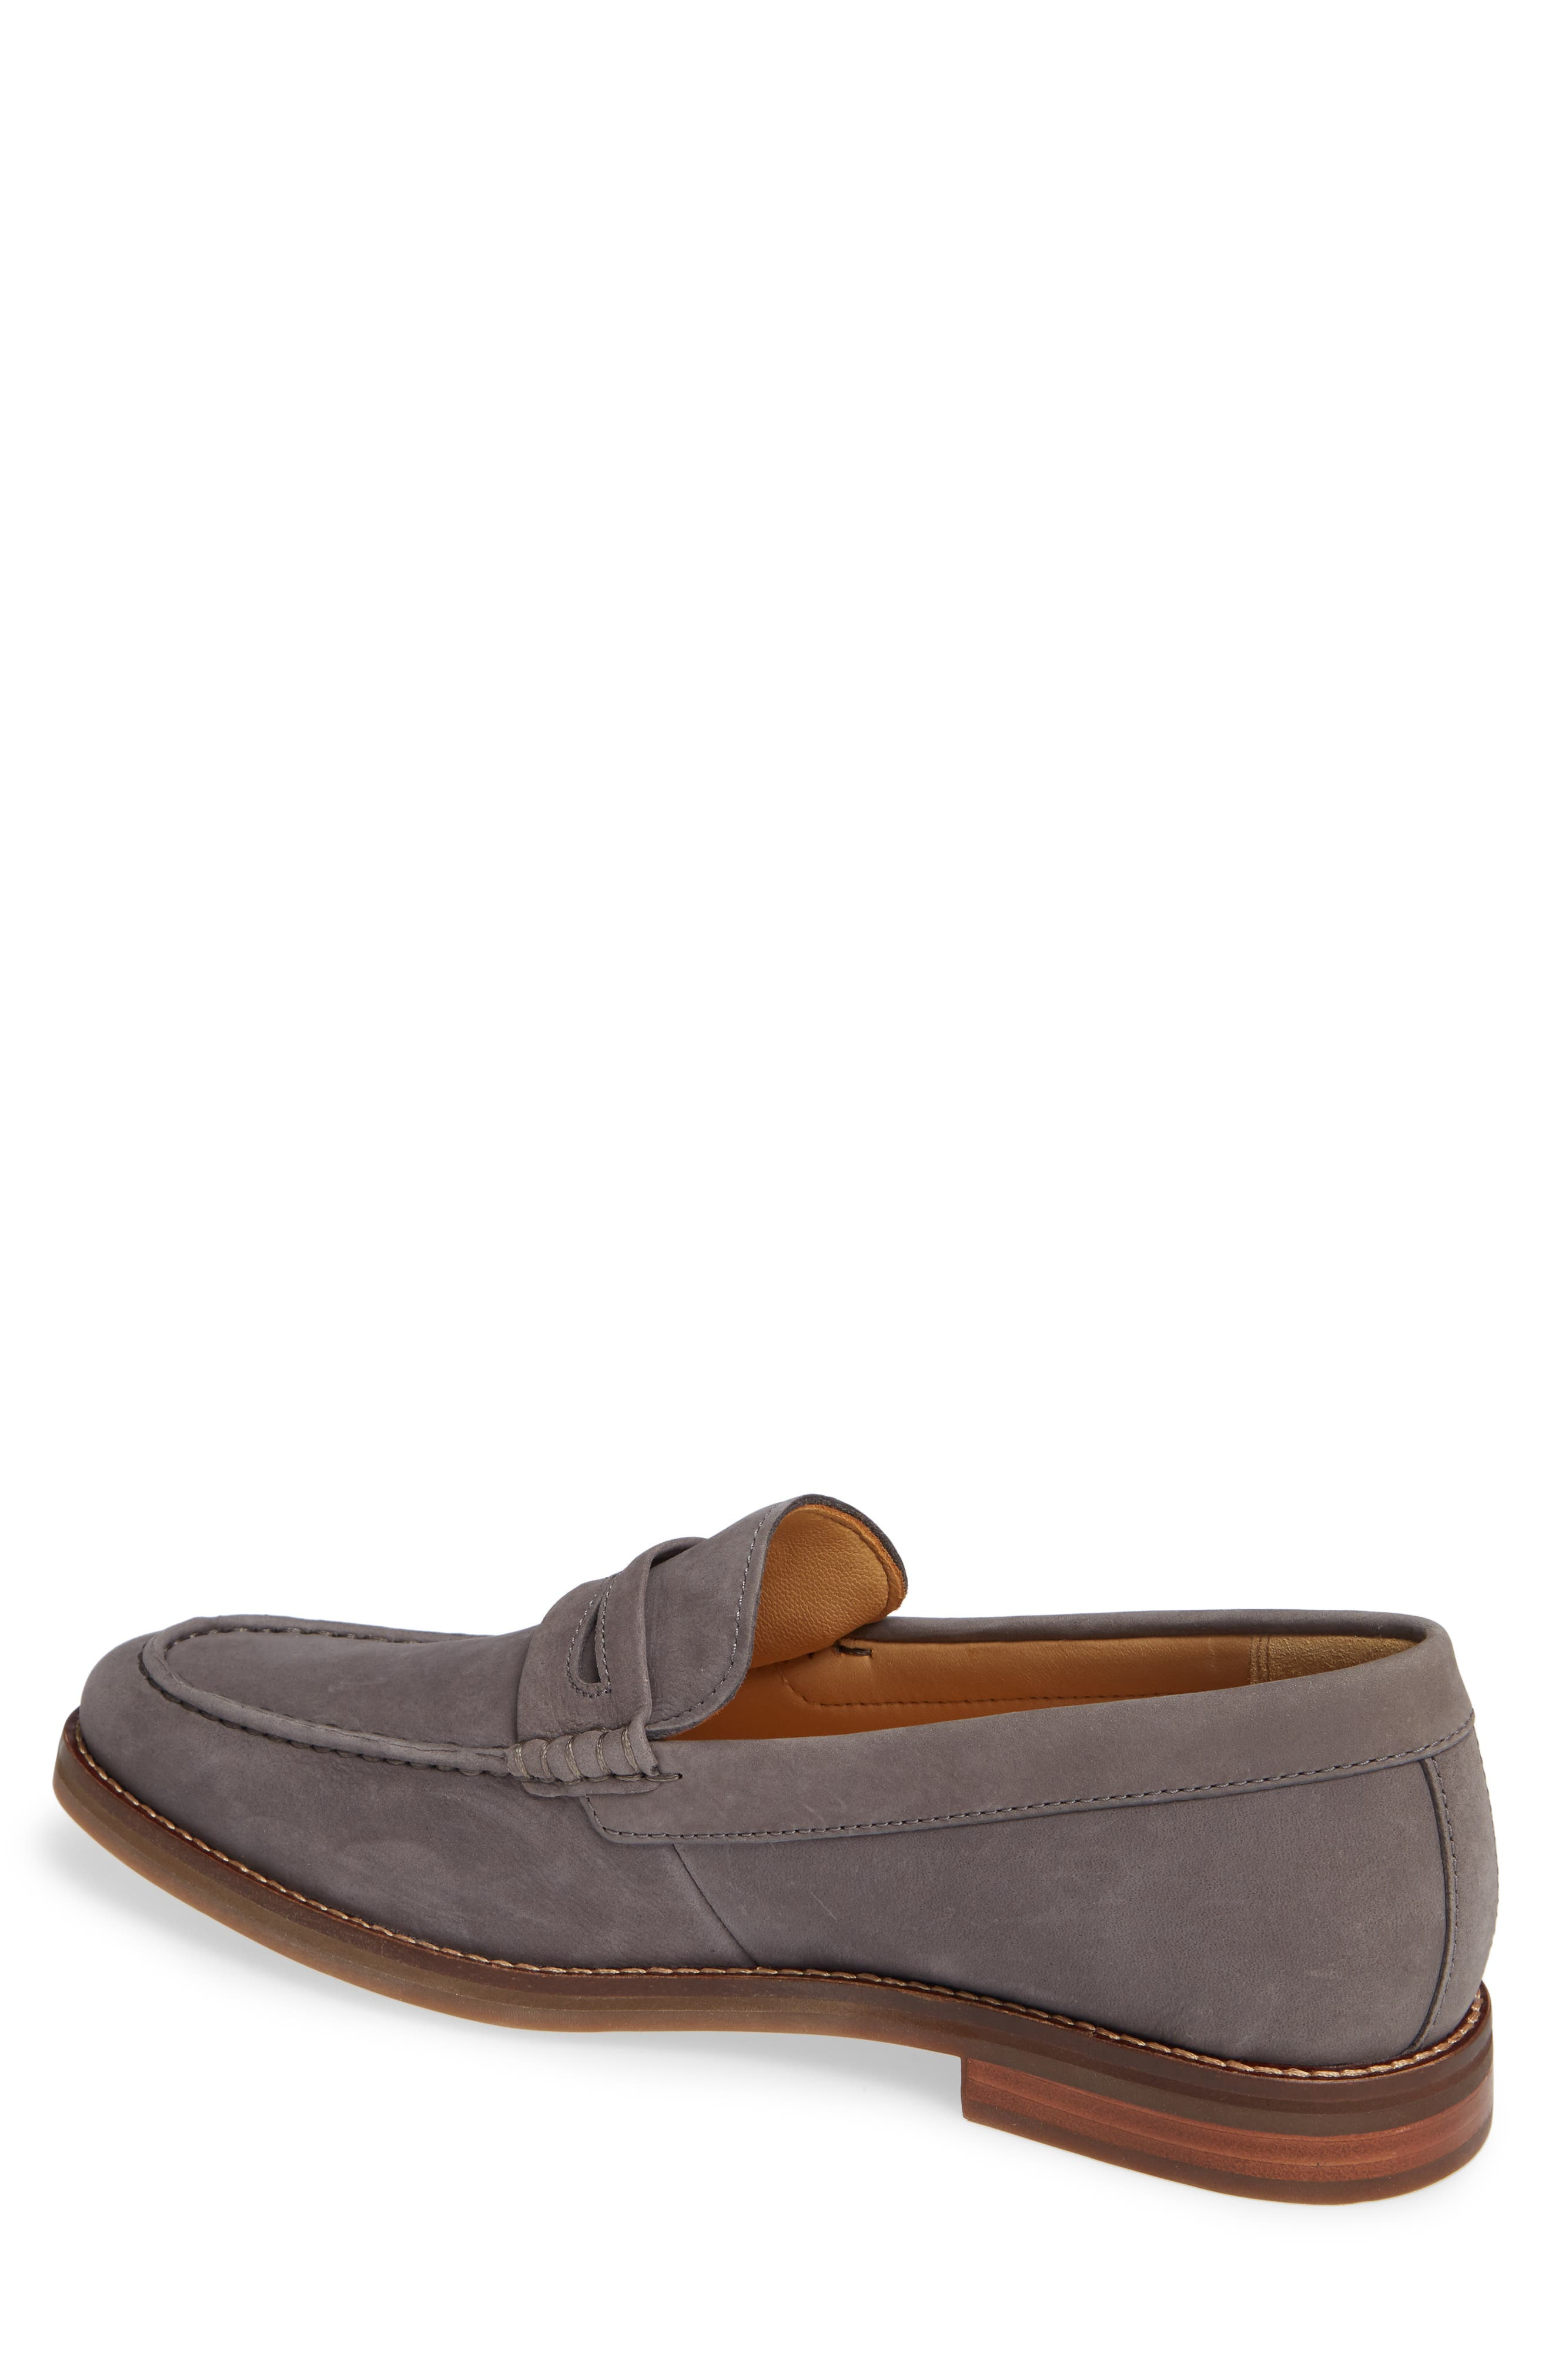 Gold Cup Exeter Penny Loafer,                             Alternate thumbnail 2, color,                             GREY